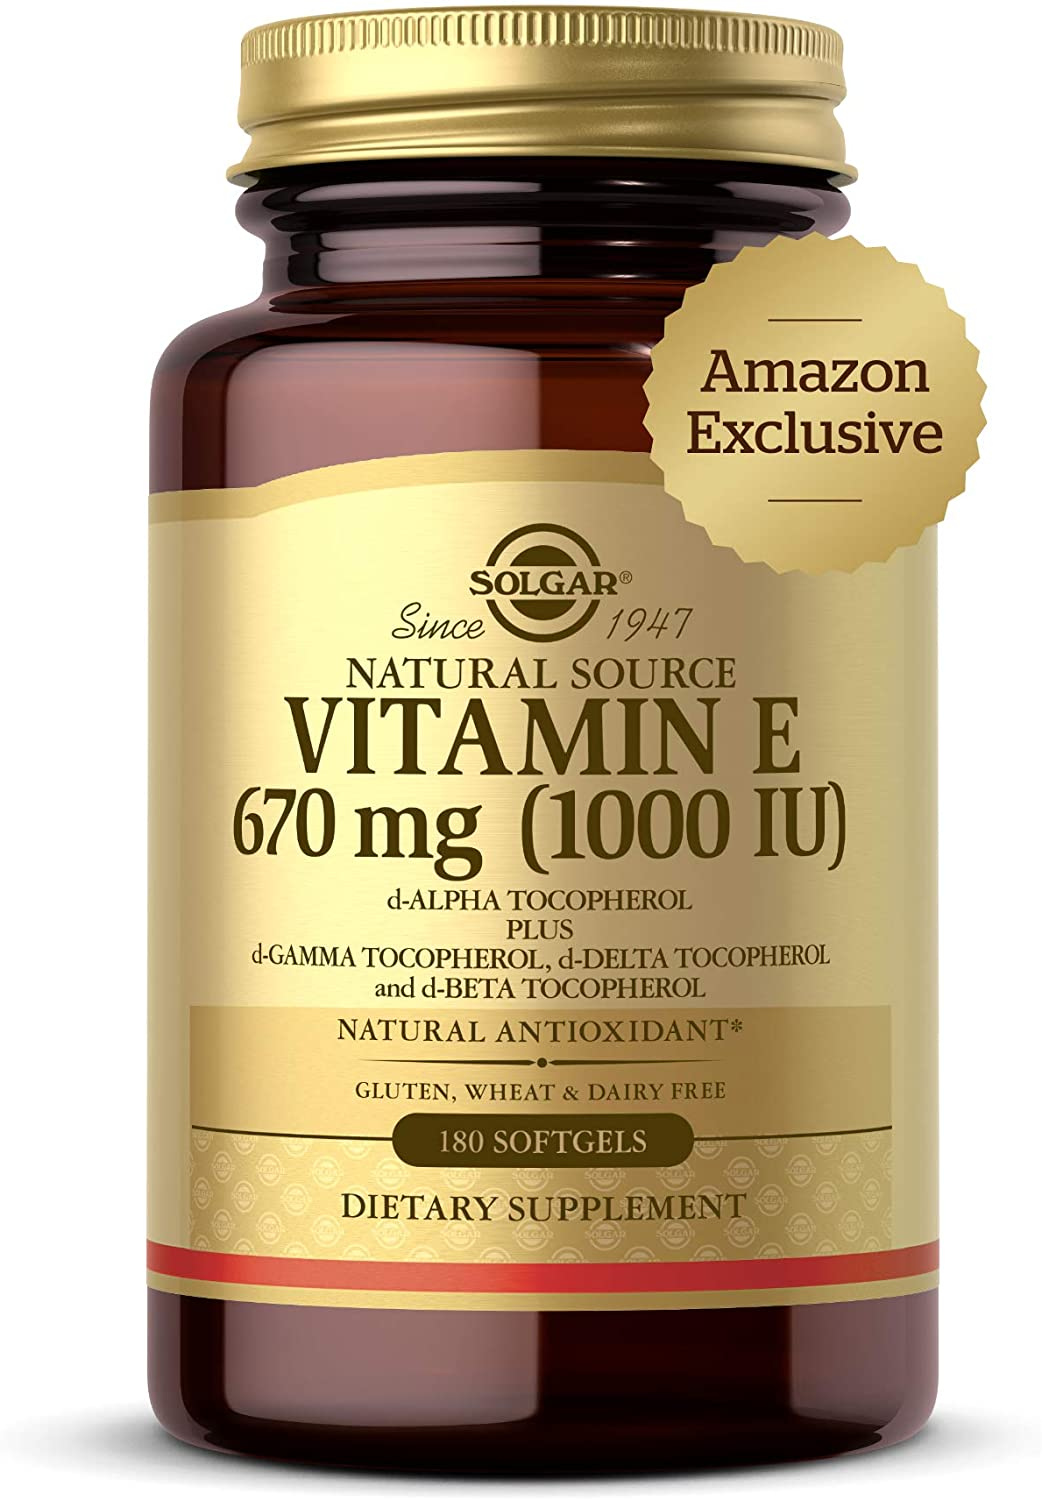 Solgar Vitamin E 670 mg 1000 IU - 180 Tablet